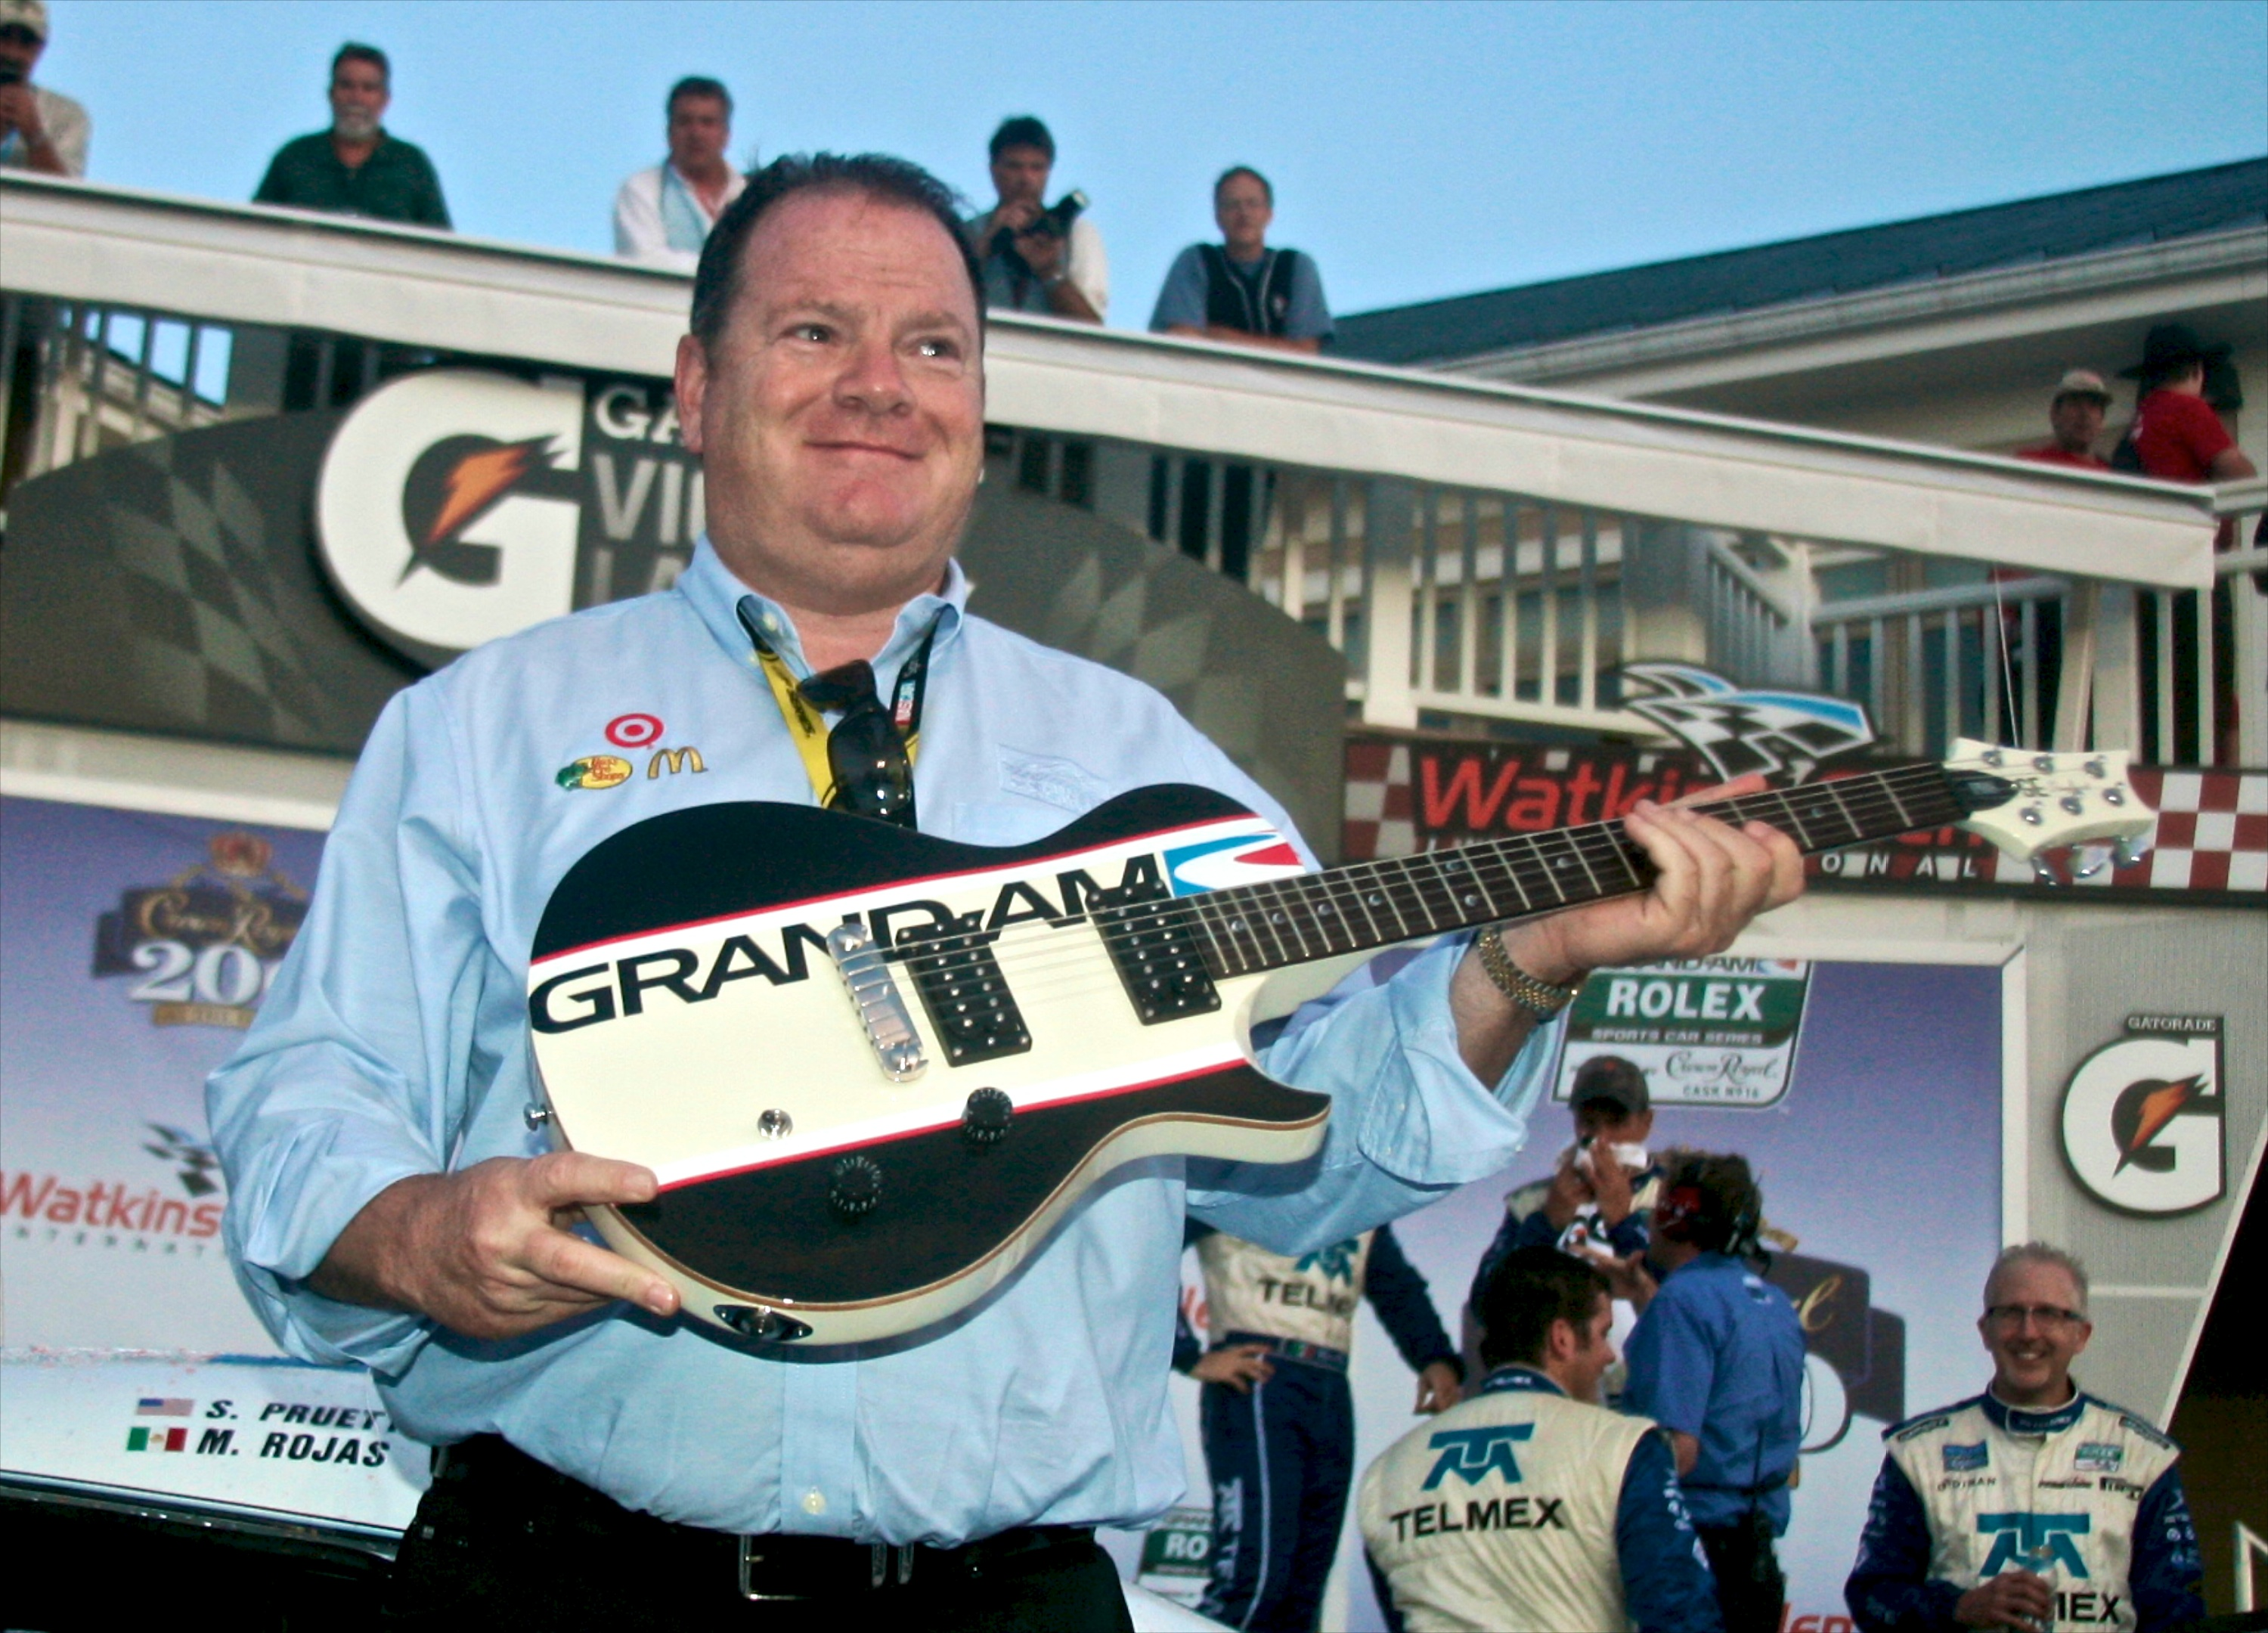 Another Major Honor for Ganassi